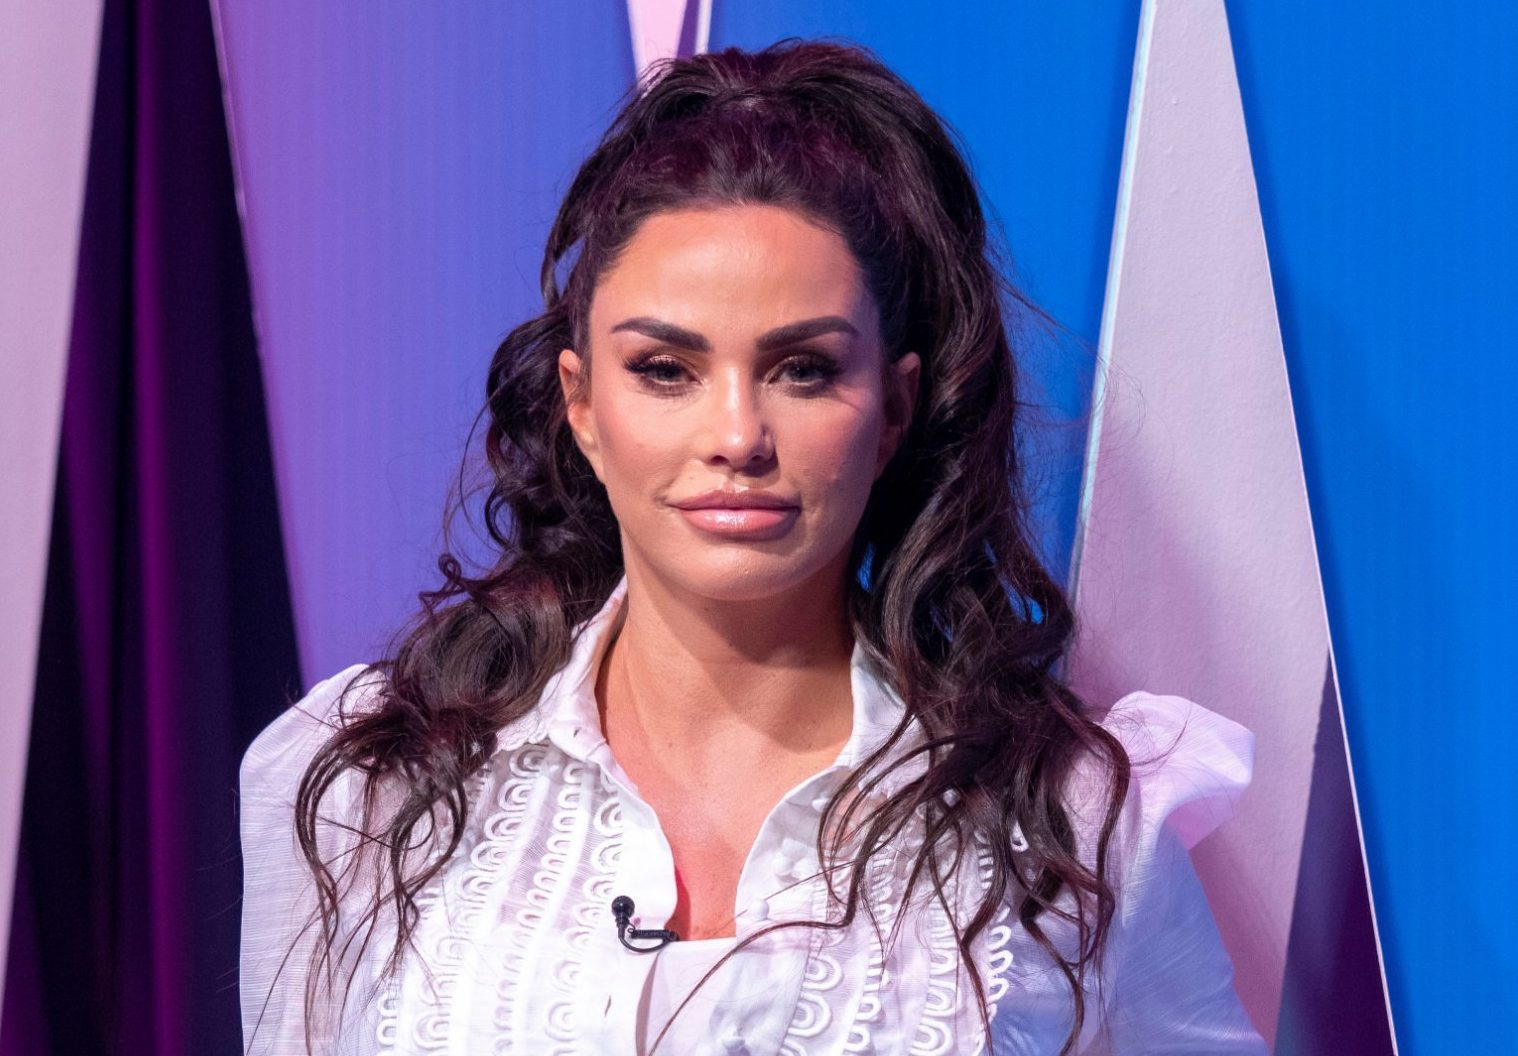 Katie Price 'offering £1,000 a week to new nanny to take care of her brood'